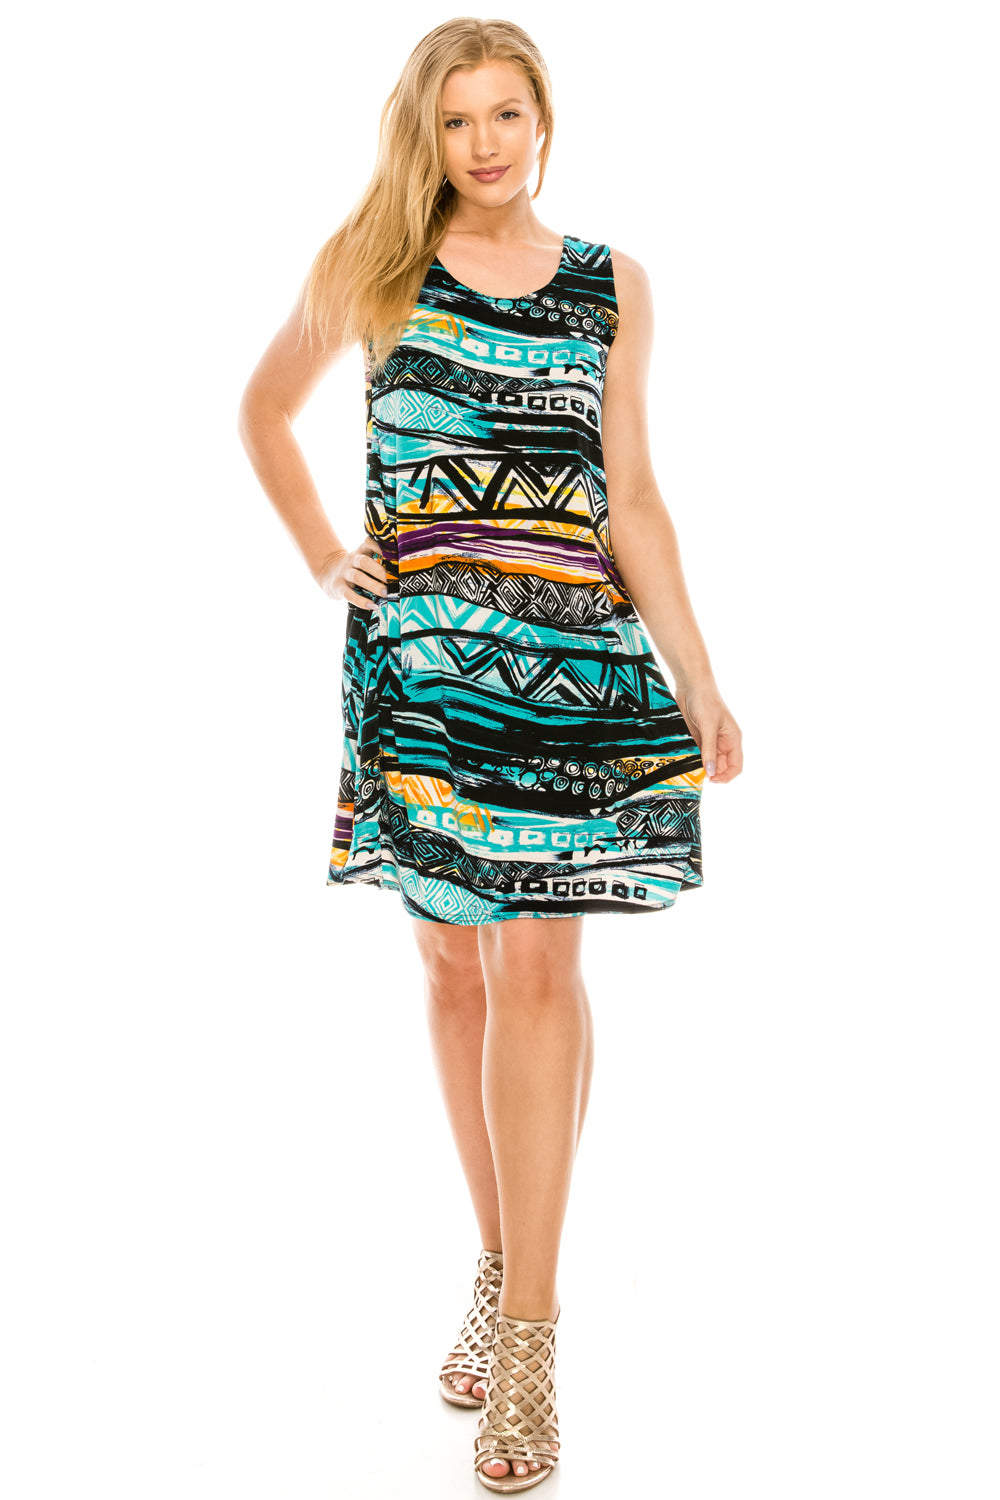 Jostar Women's Stretchy Missy Tank Dress Print Plus, 703BN-TXP-W194